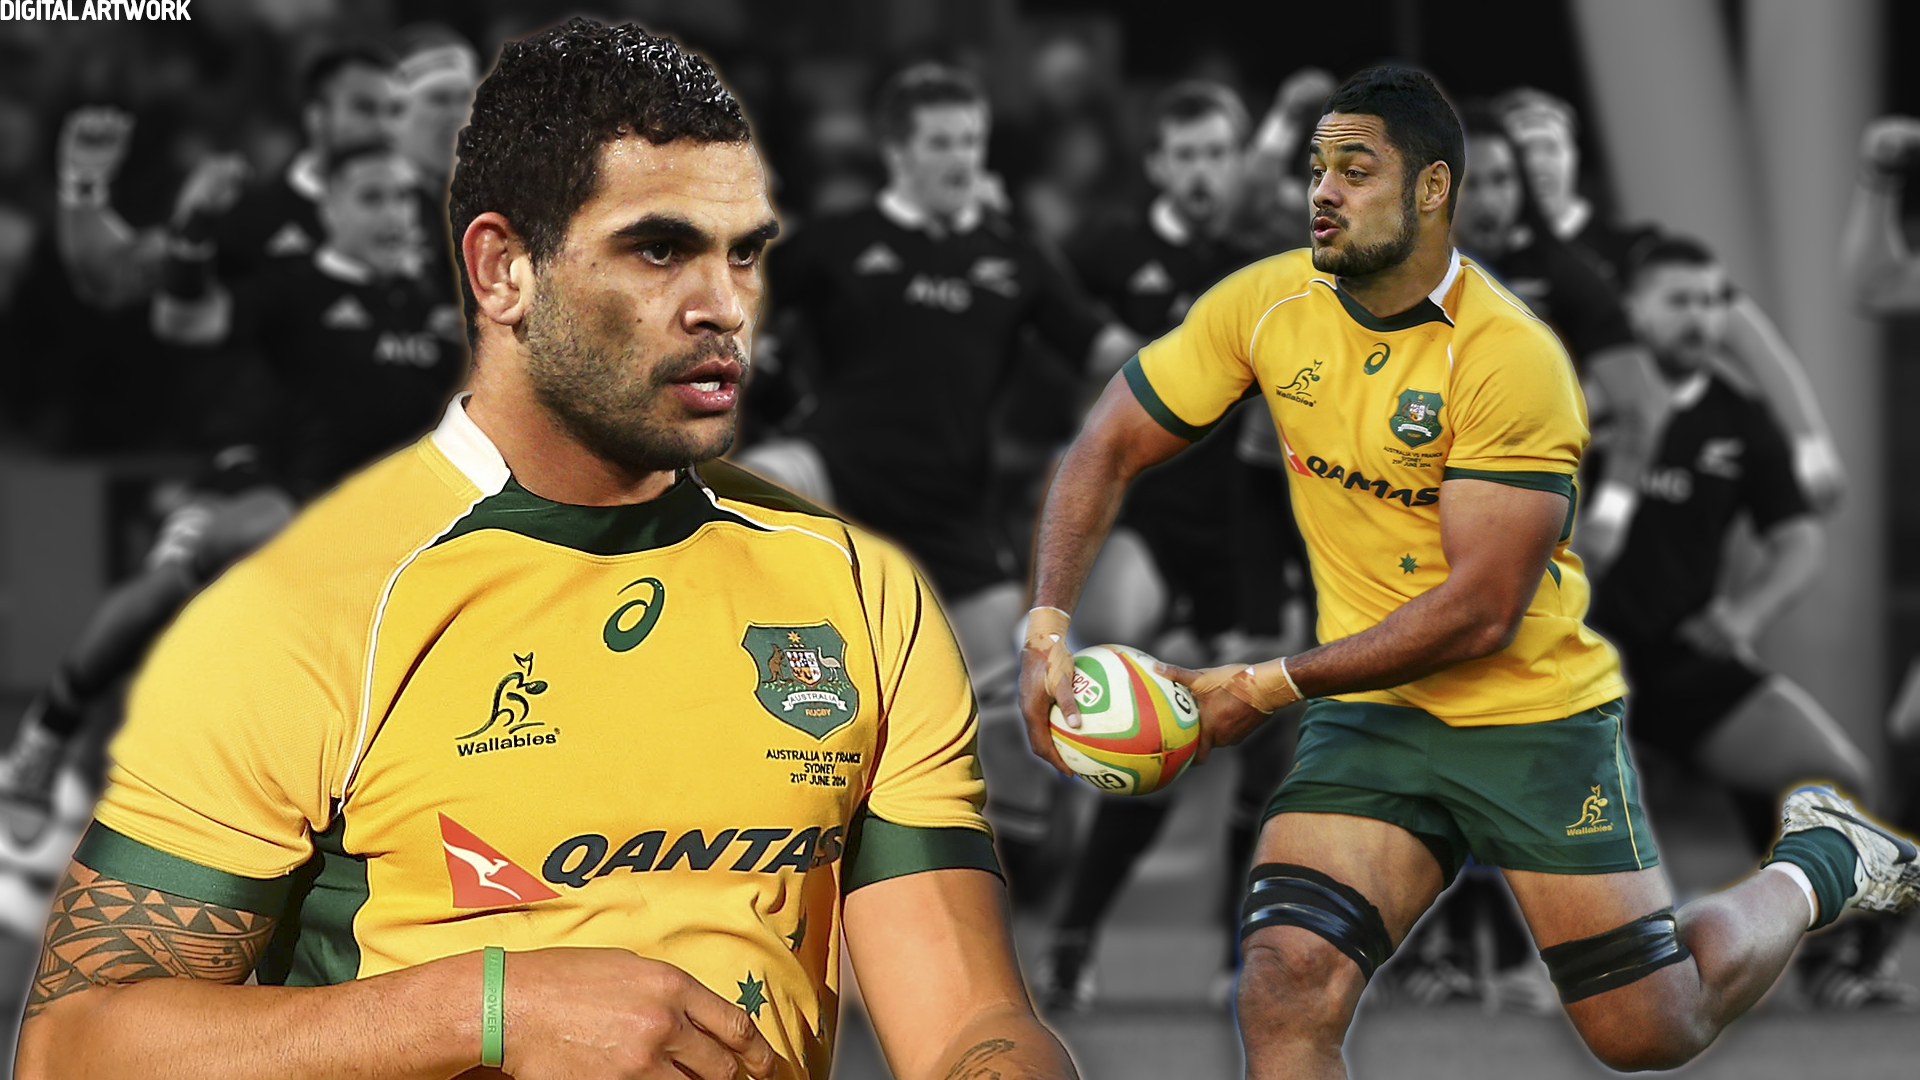 The Lurker S Letter To The Wallabies Ahead Of Their Bledisloe Cup Match Against The All Blacks Sporting News Australia